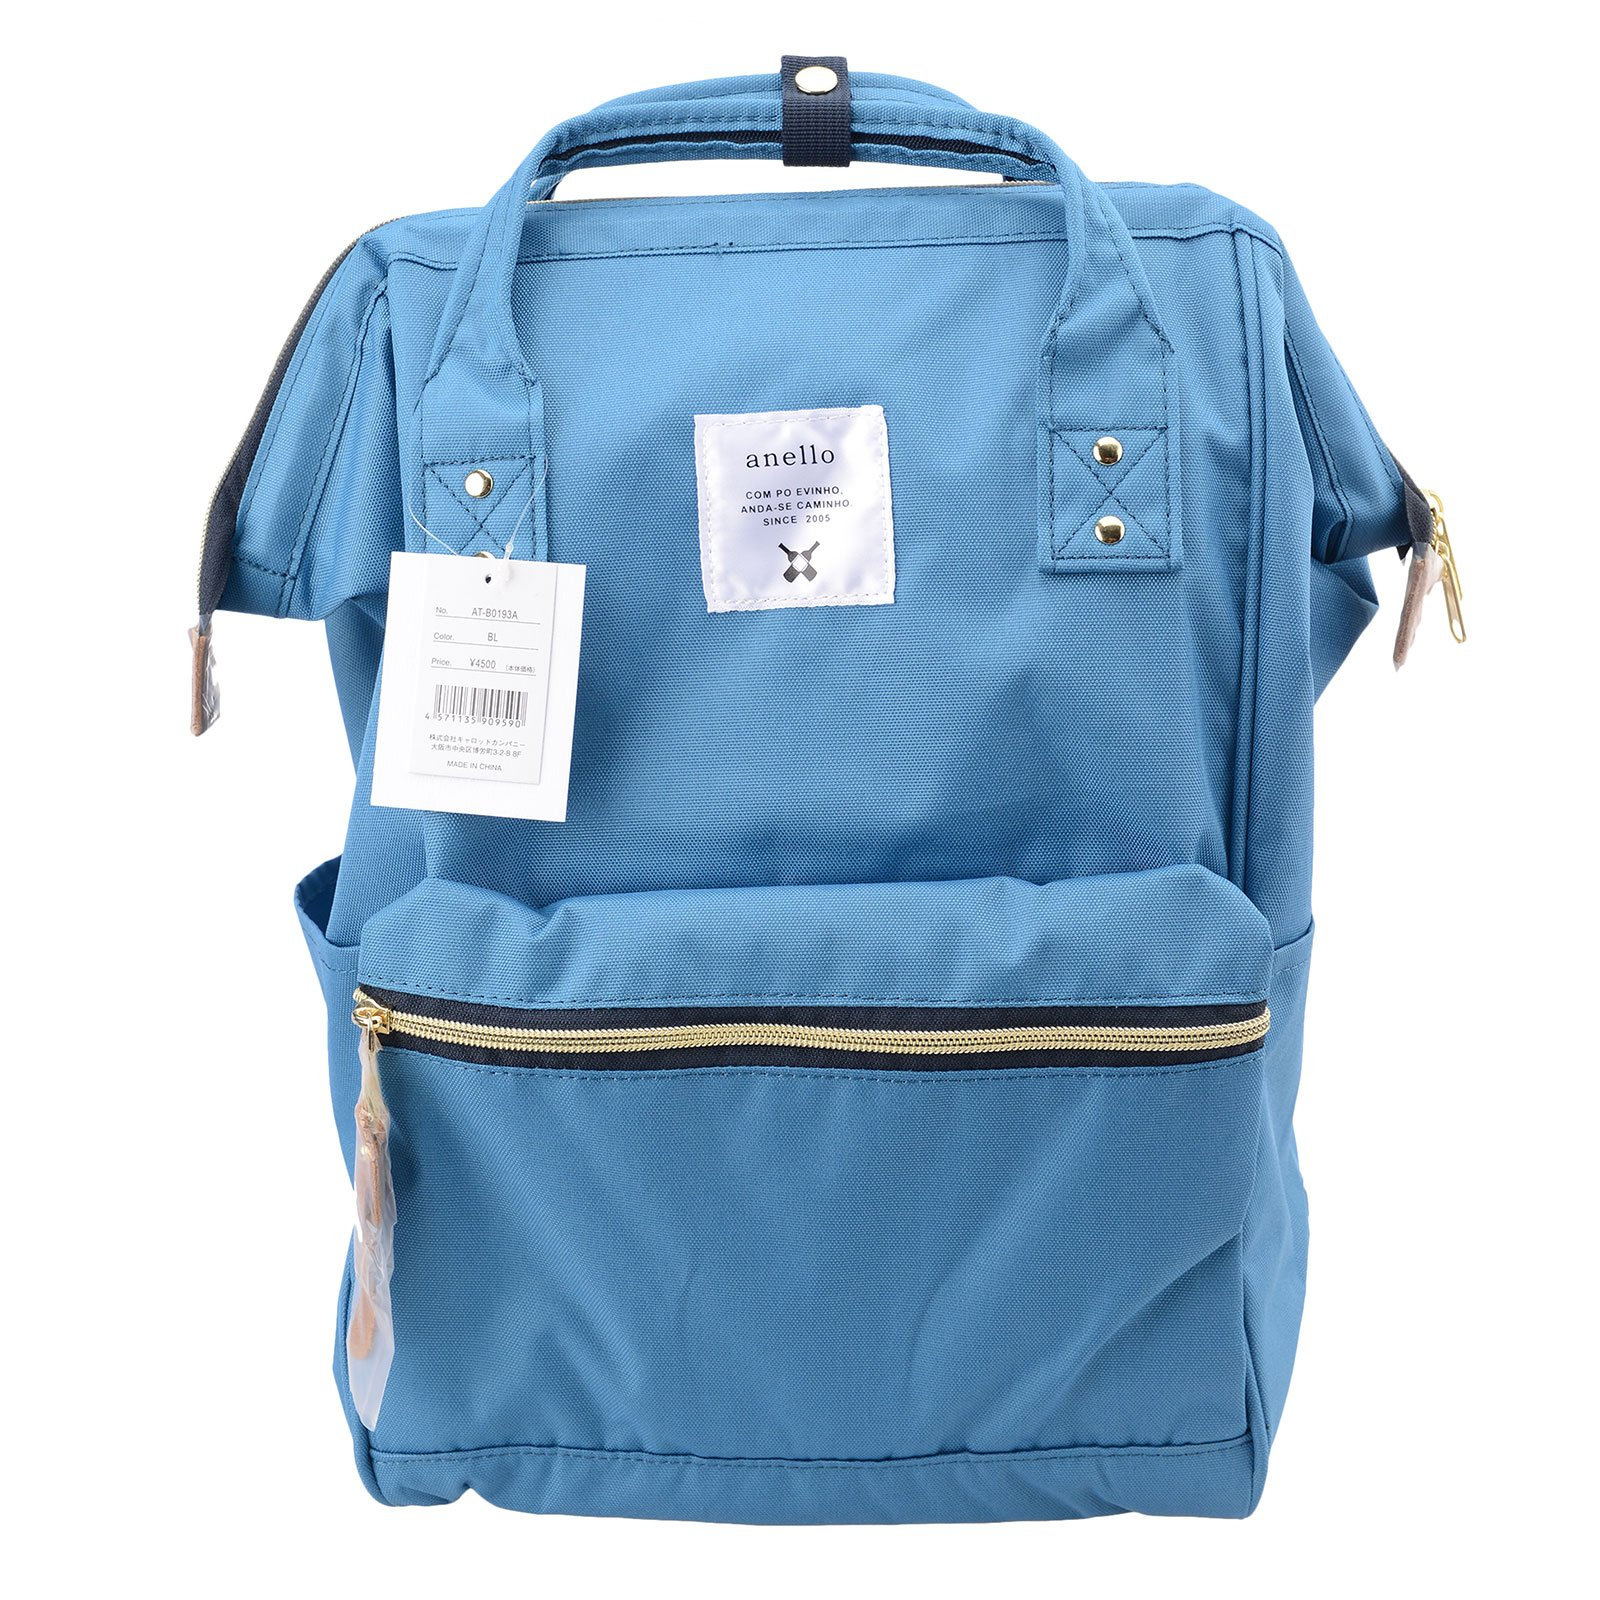 Anello Official Sea Blue Japan Fashion Shoulder Rucksack Backpack Casual Tablet Diaper Bag Unisex